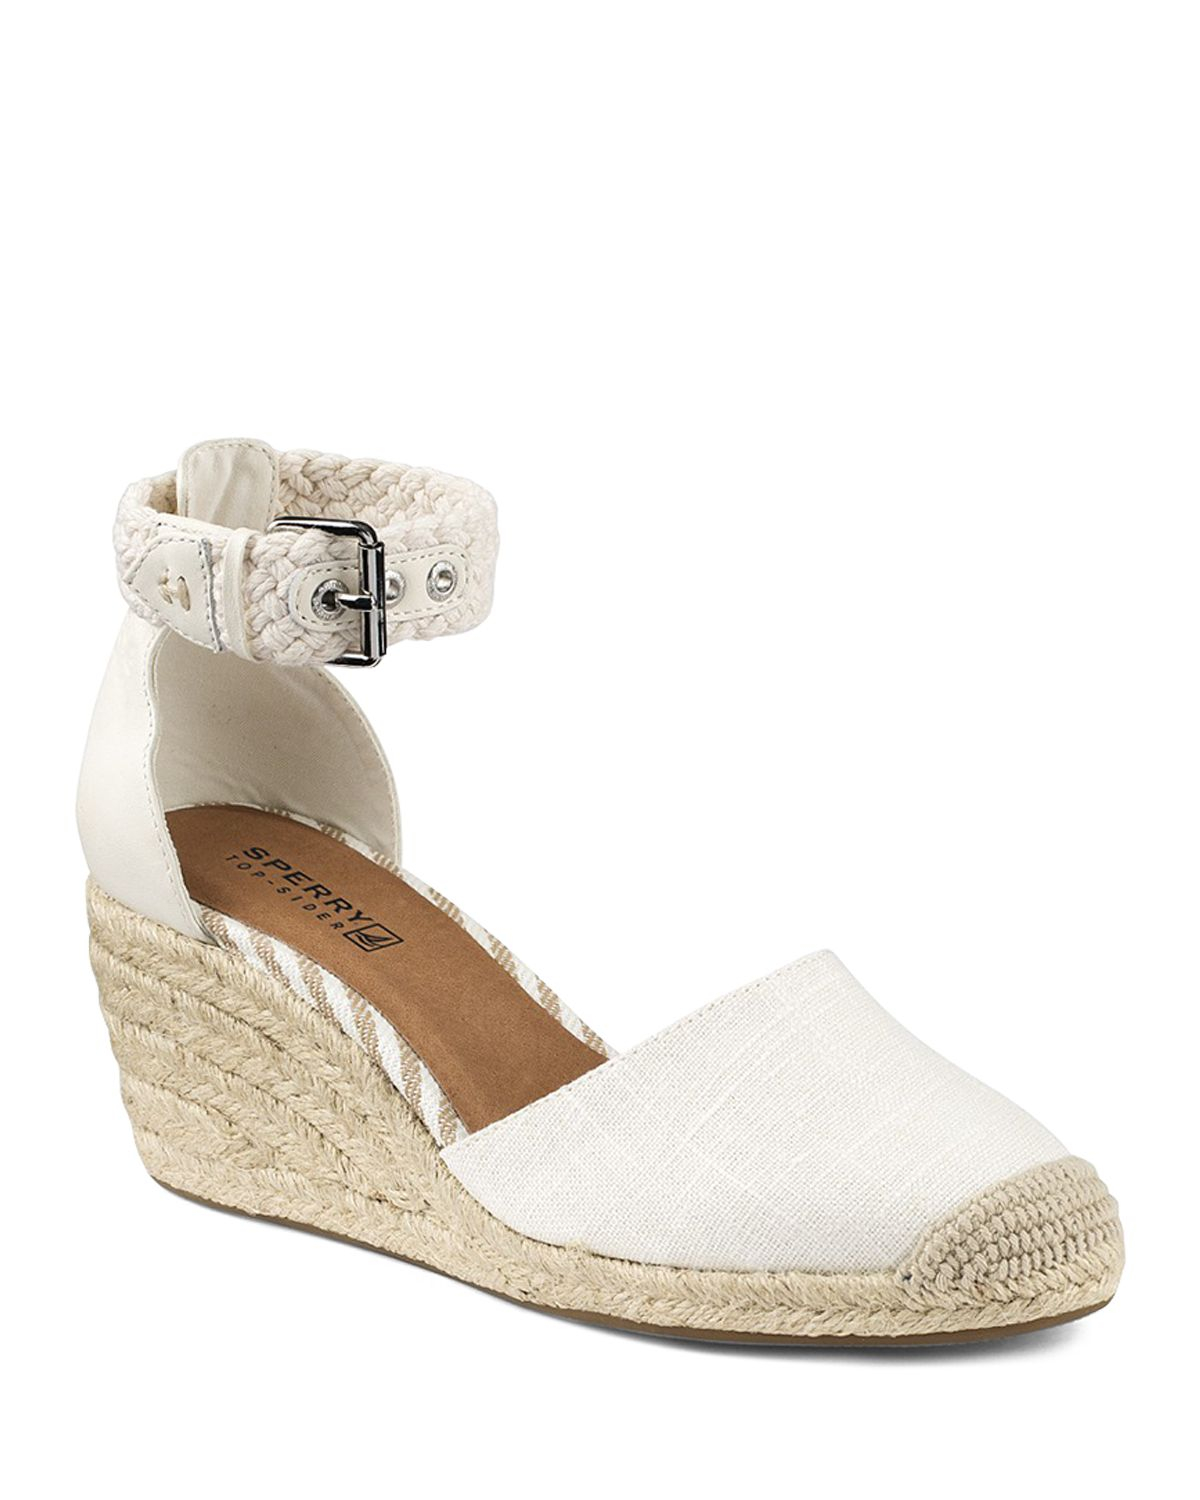 Gallery - Sperry Top-sider Espadrille Wedge Sandals - Valencia Closed Toe In